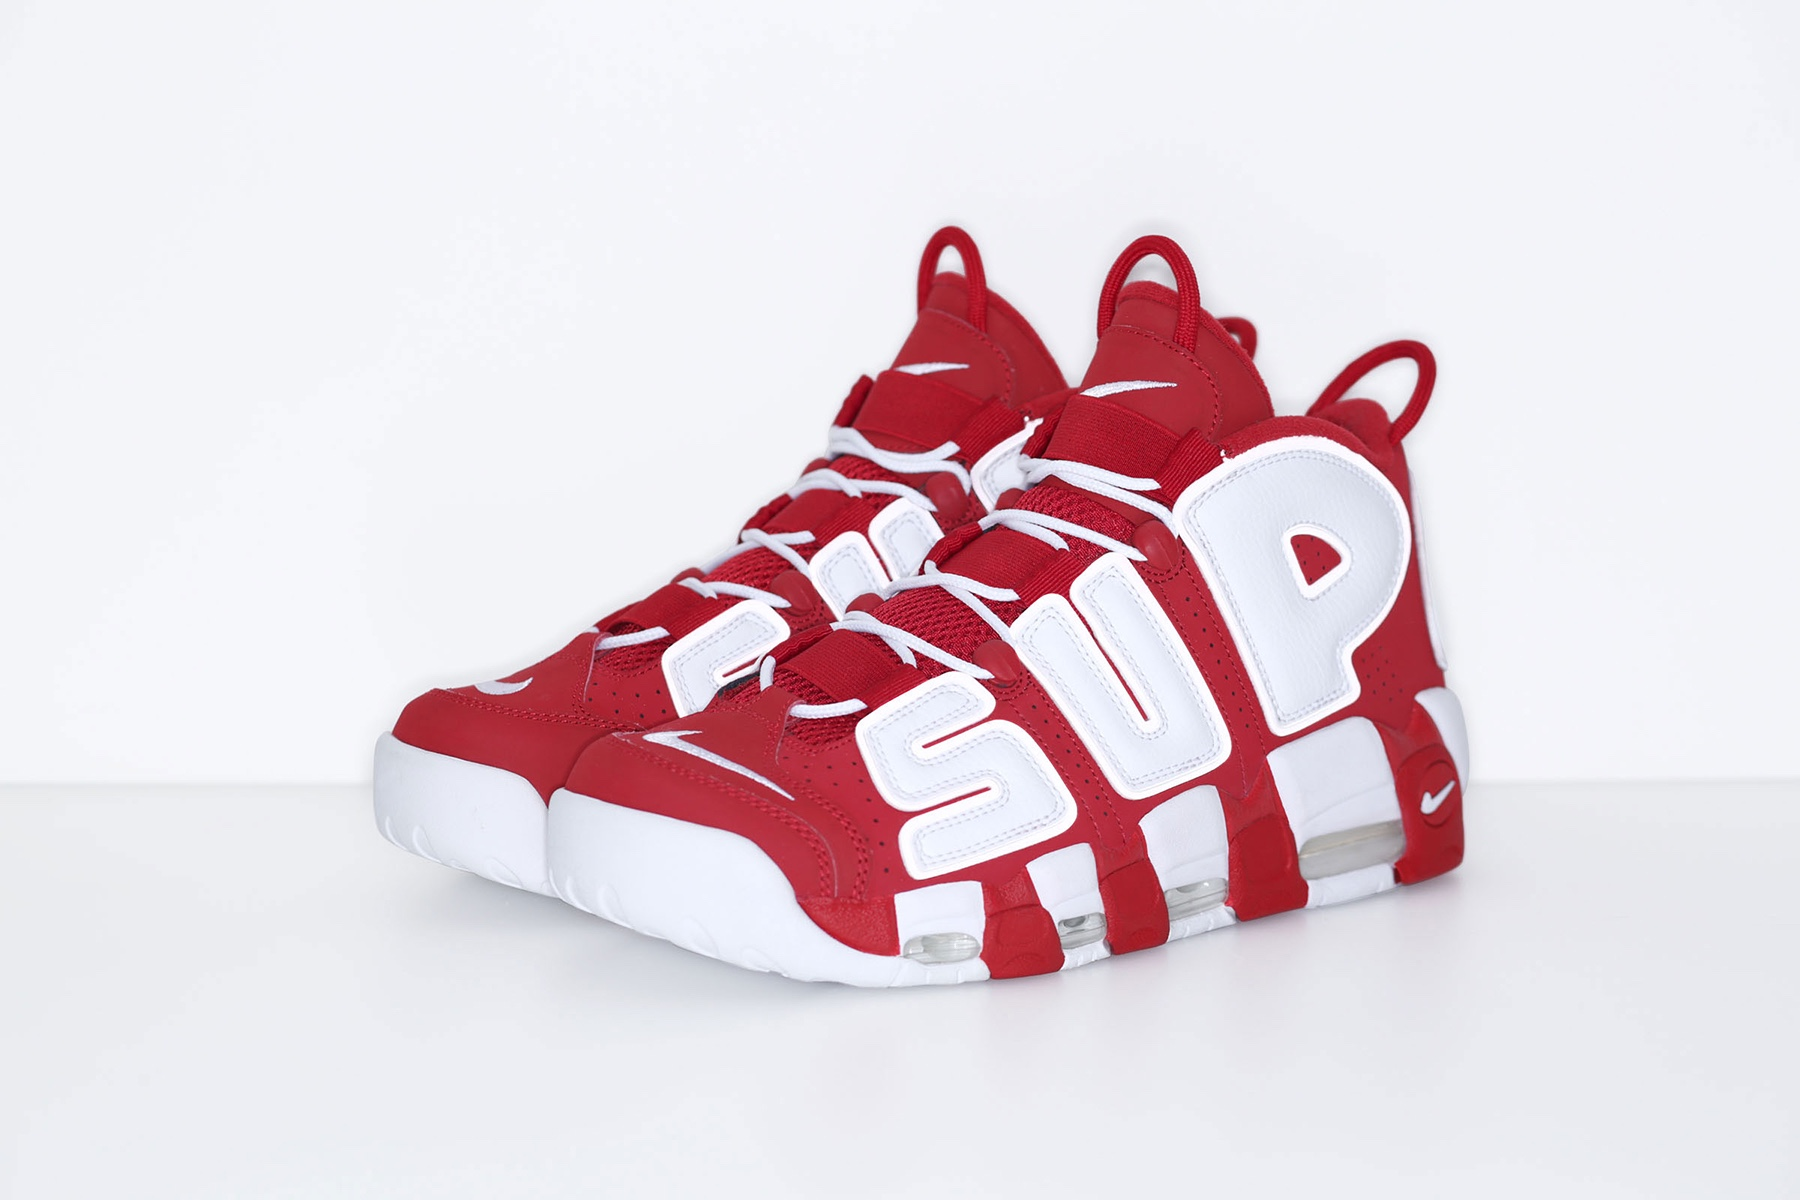 supreme-nike-air-more-uptempo-2017-spring-summer-red-4